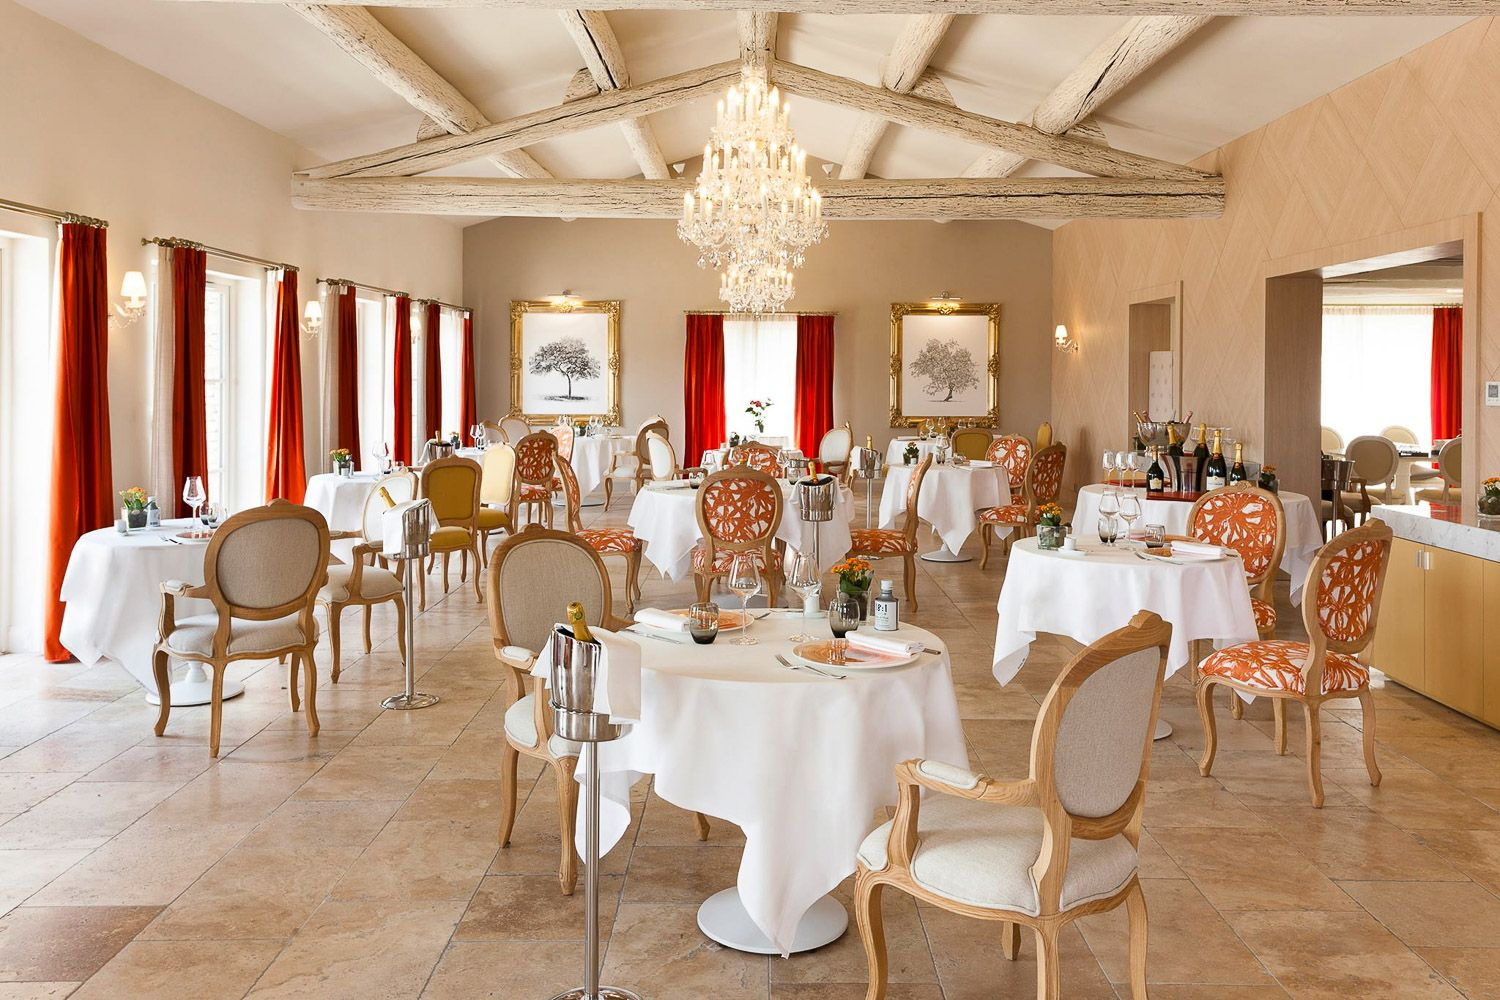 Mobilier Hotel Restaurant Creation Mobilier Hotel Mas Des Herbes Blanches Restaurant